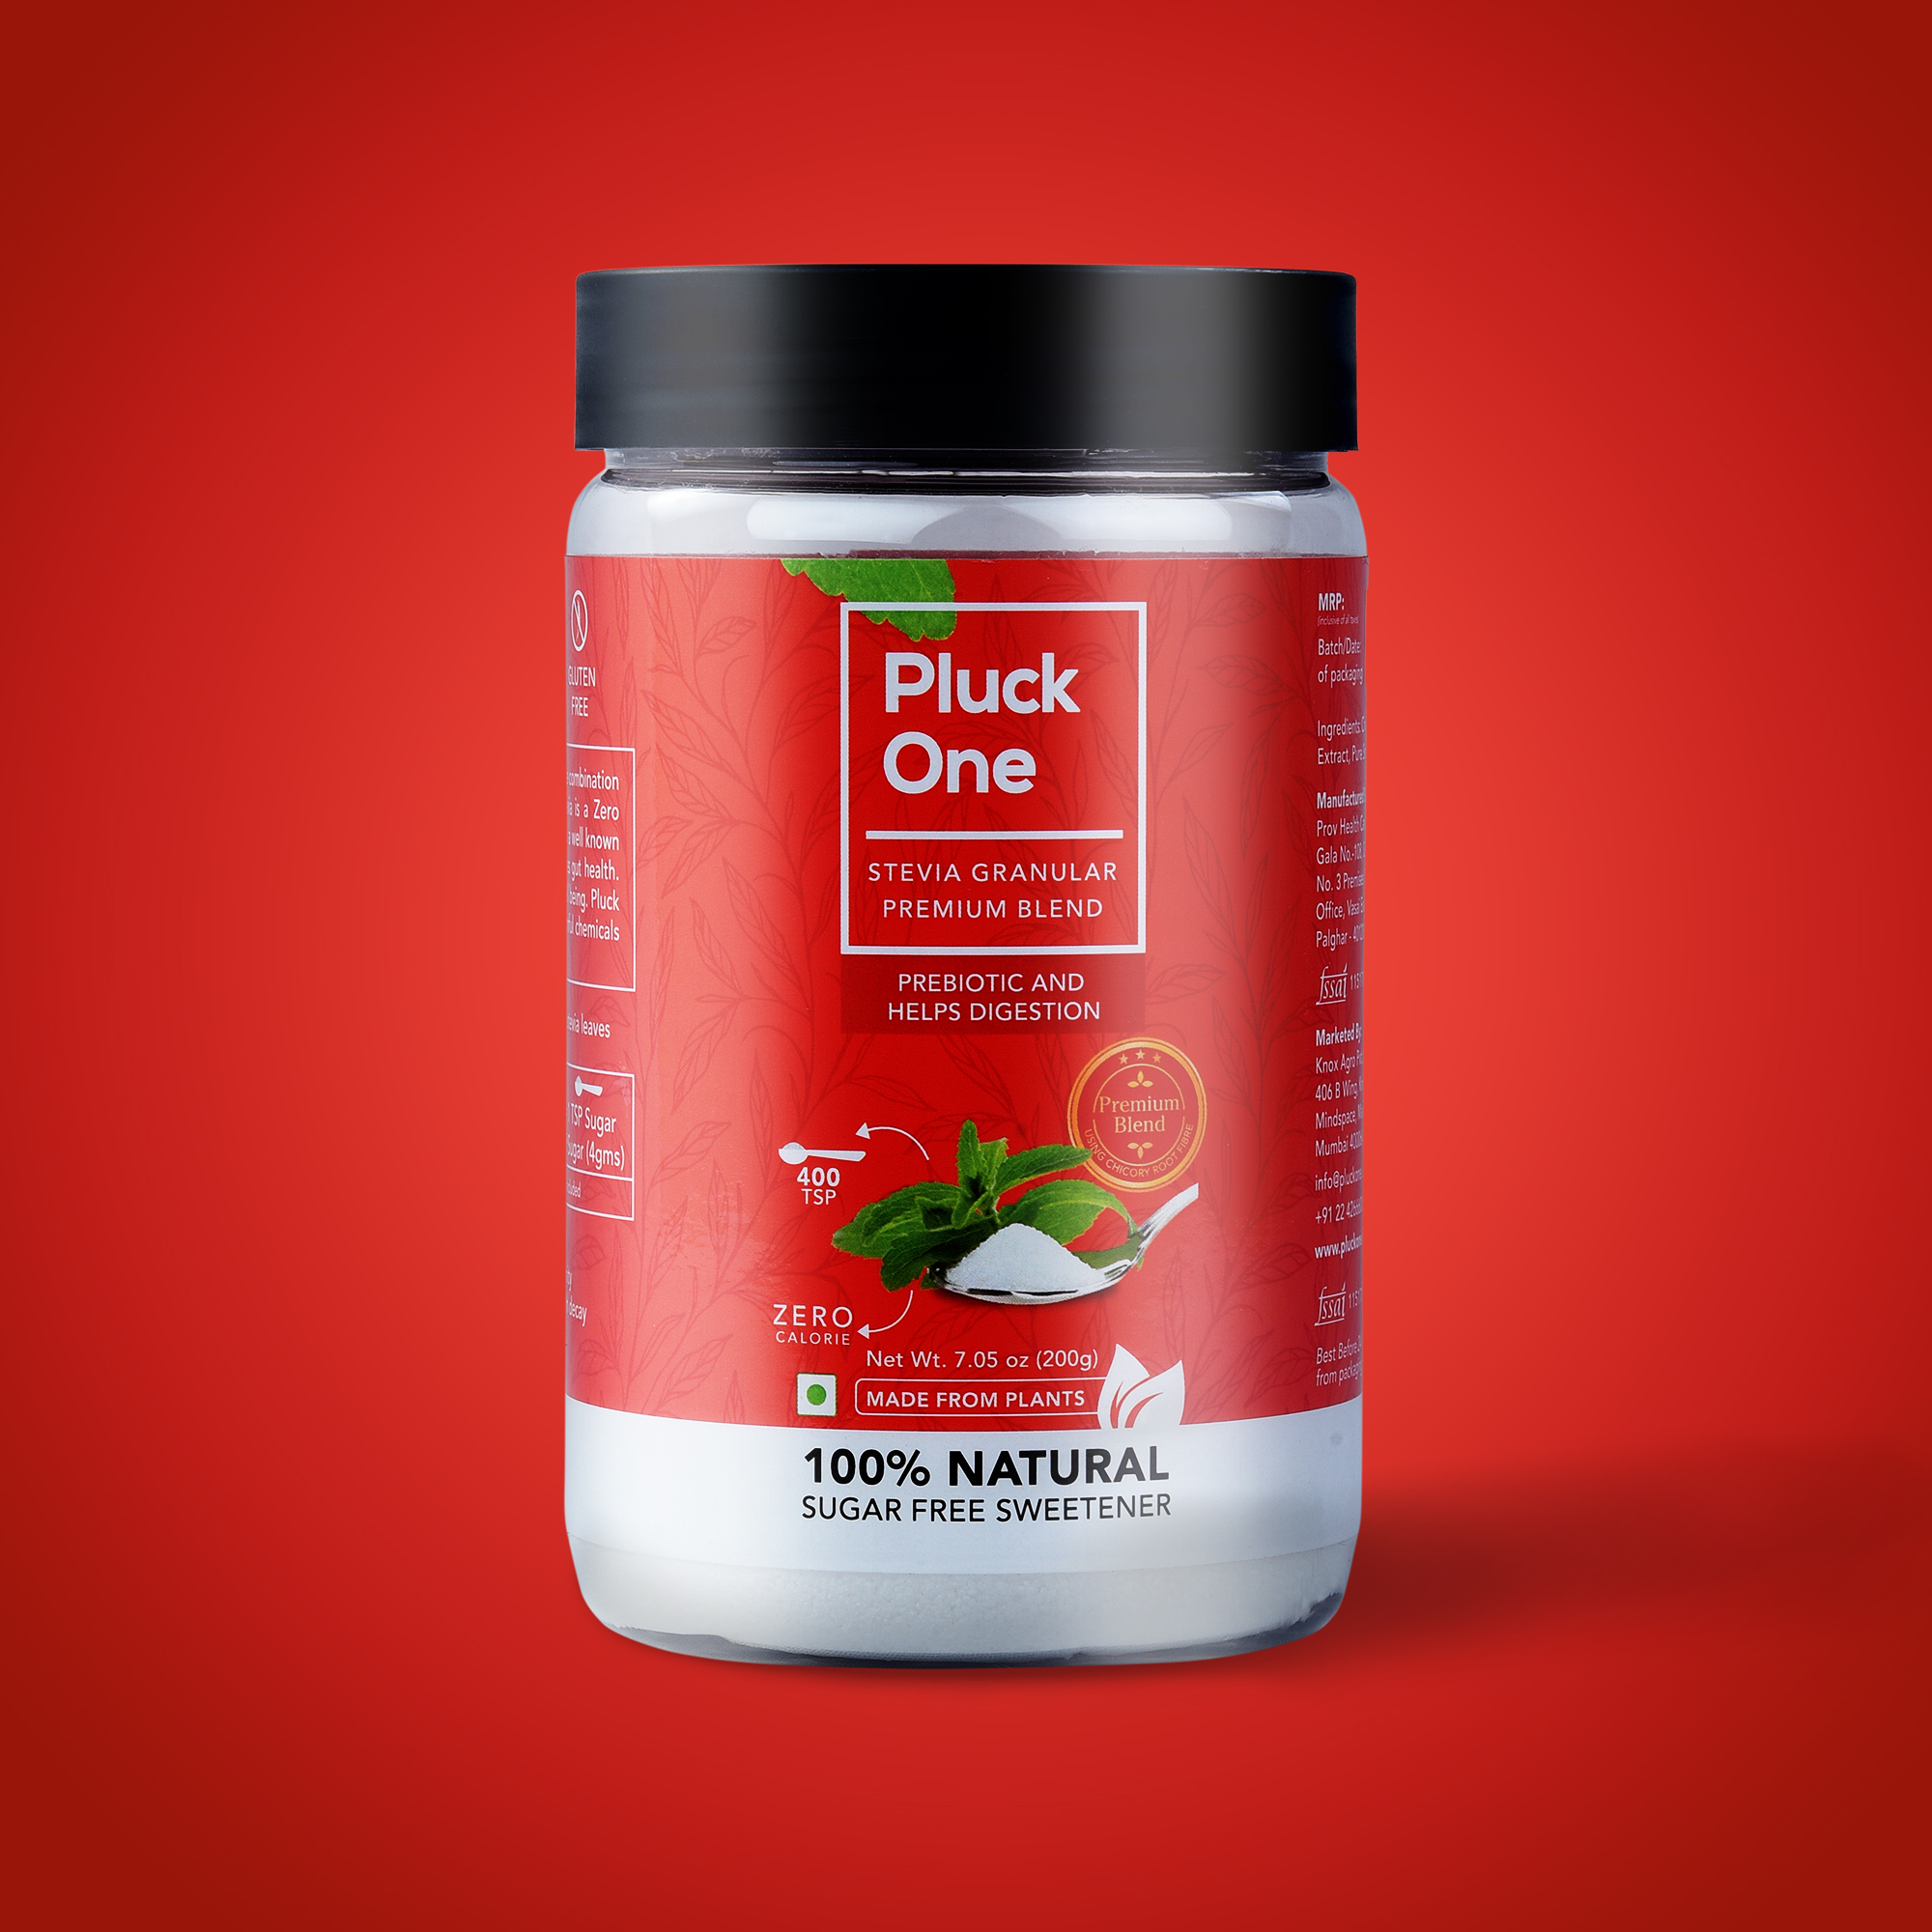 Pluck One Mockup(Red)